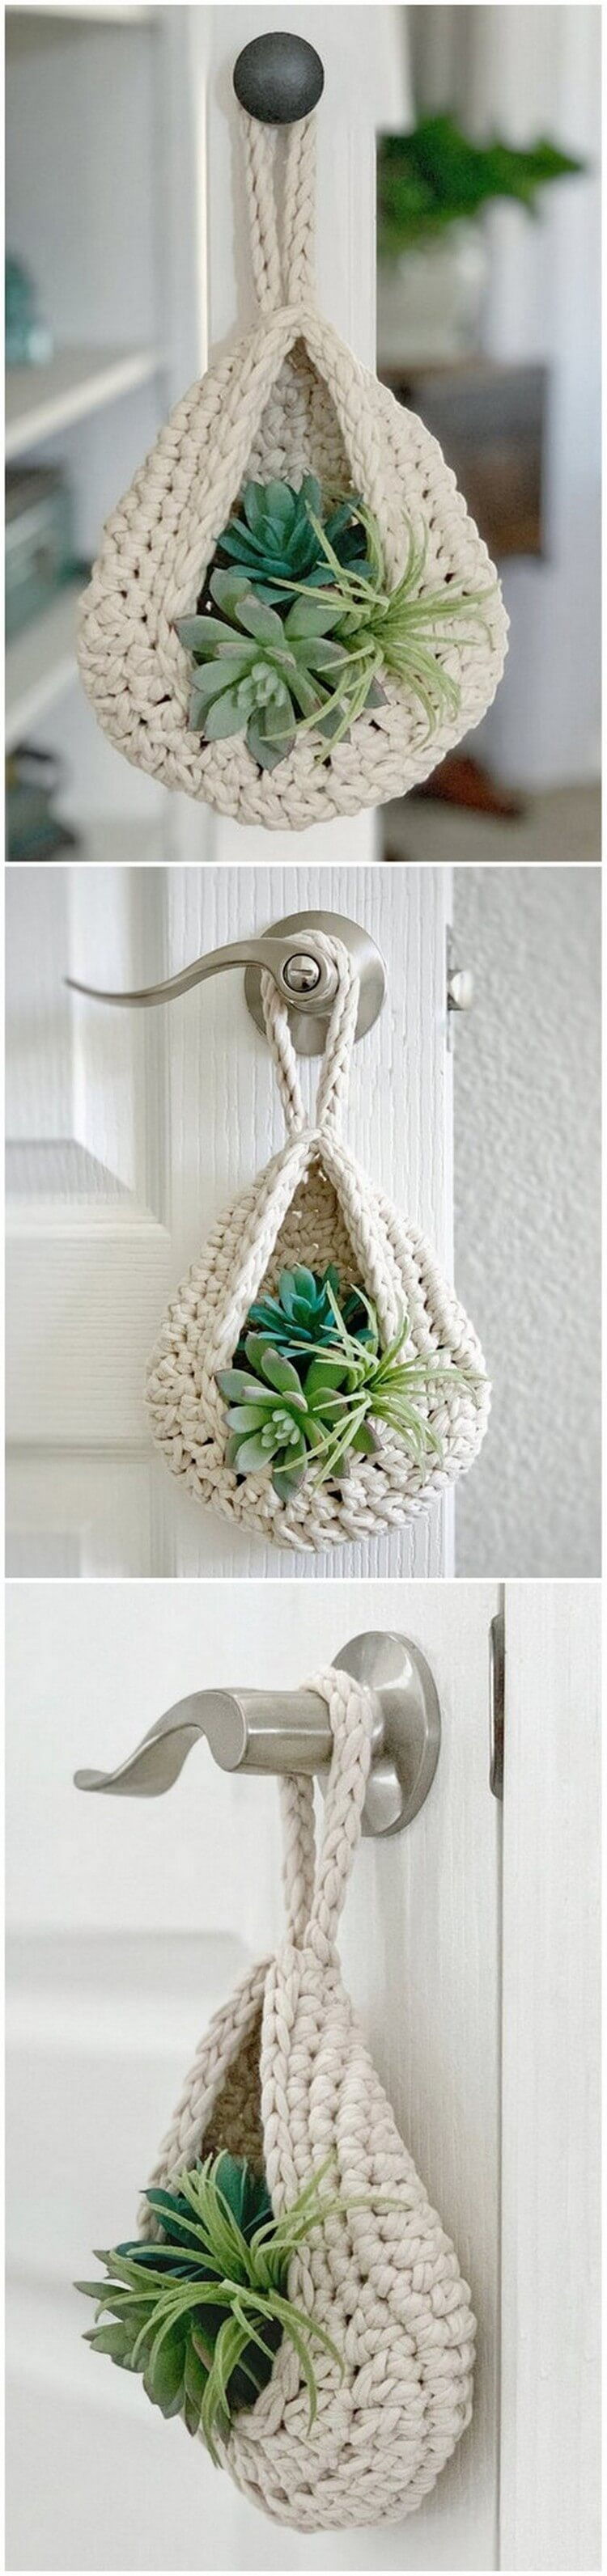 Crochet Basket Pattern (111)